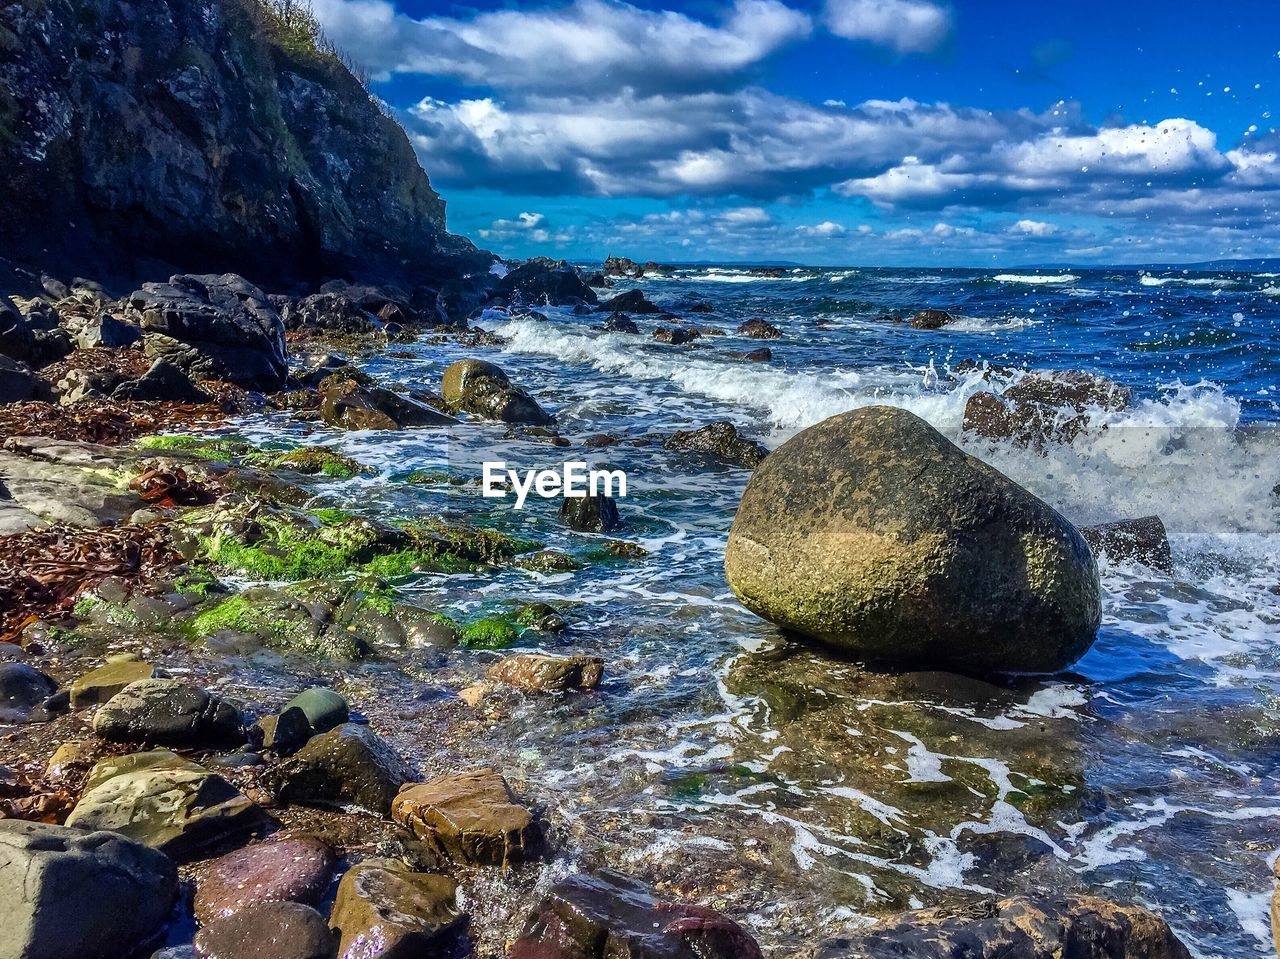 rock - object, sea, beauty in nature, nature, rock formation, water, tranquil scene, scenics, tranquility, sky, cloud - sky, rock, no people, day, outdoors, horizon over water